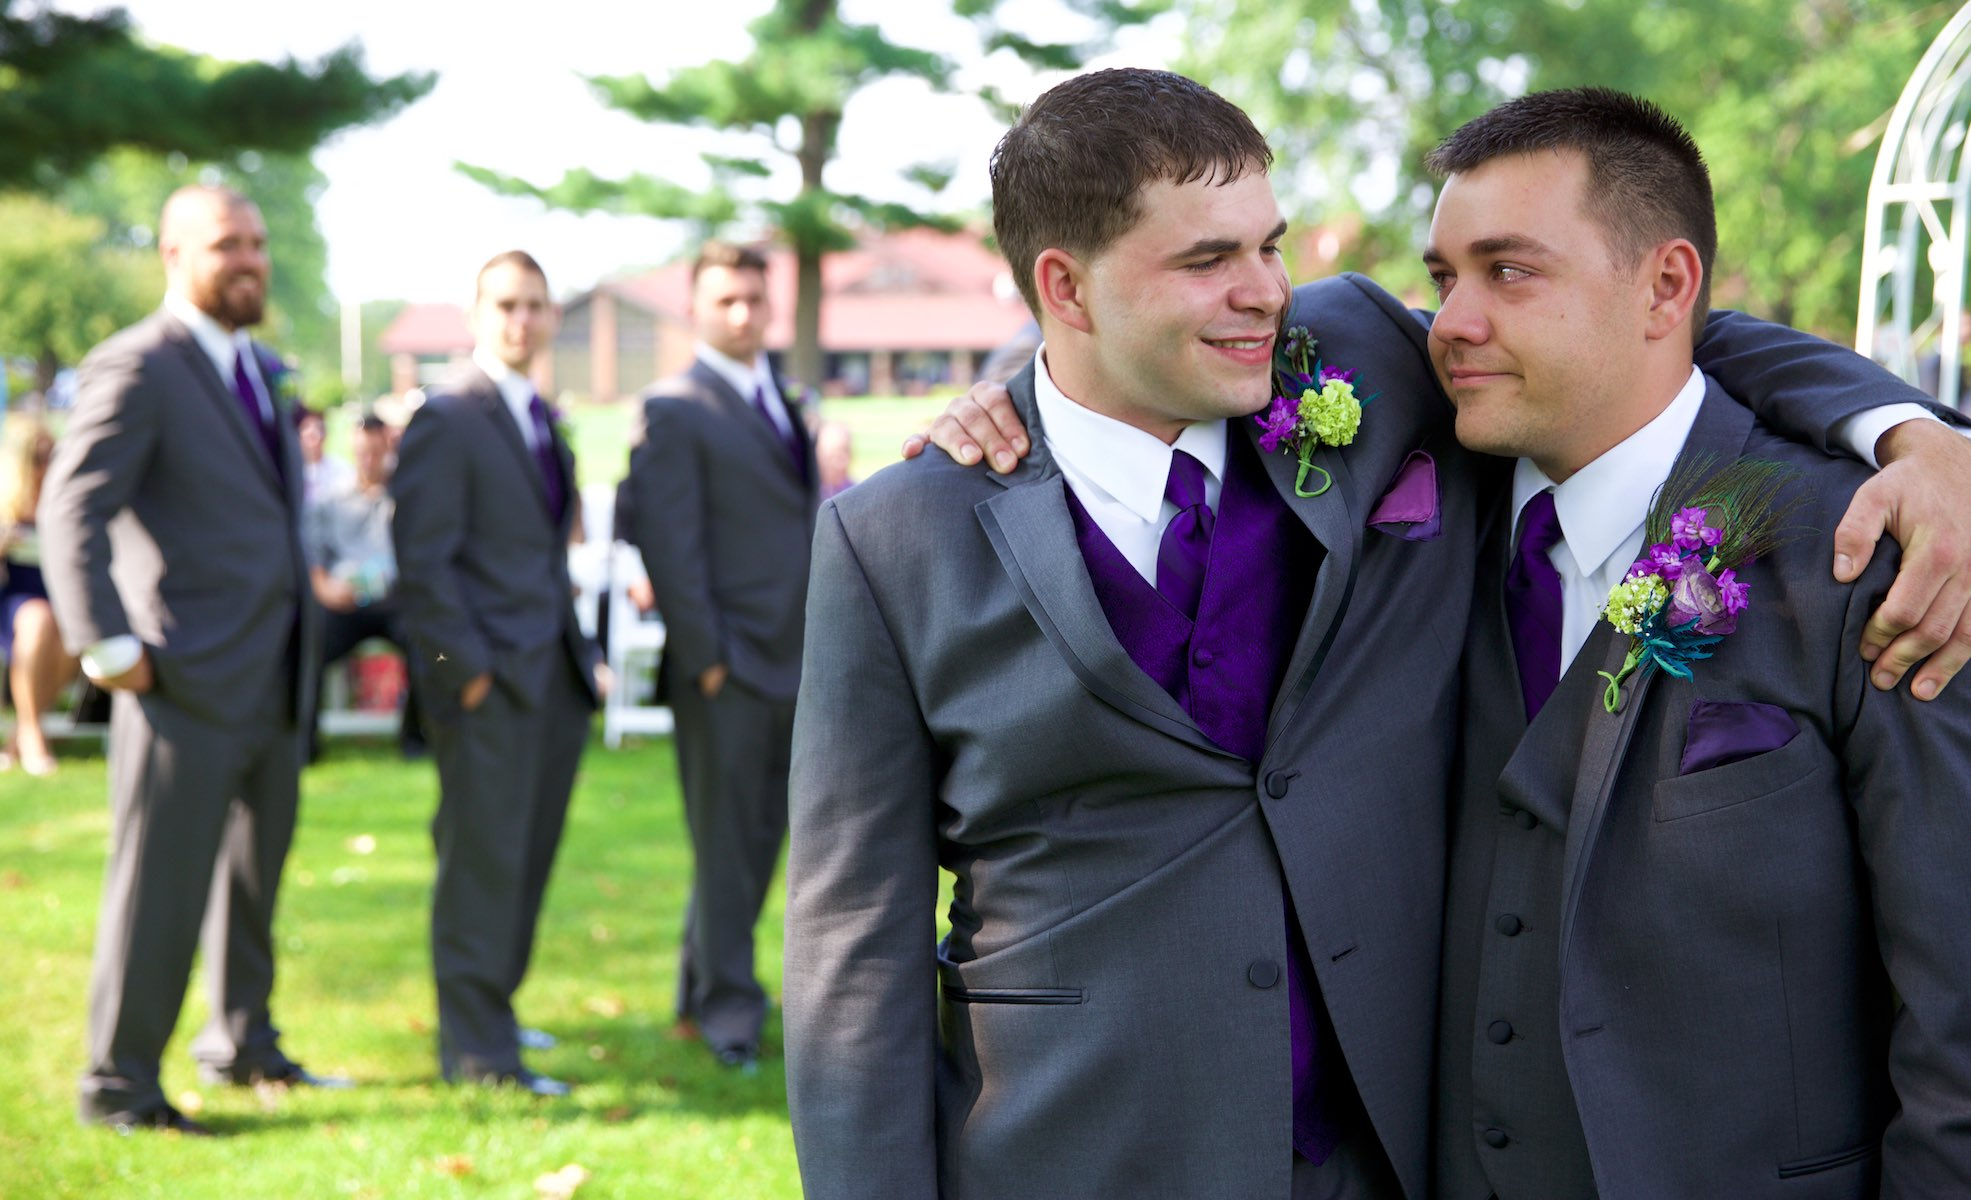 Best Man Clay hugs Nick after getting emotional before the wedding ceremony at the Jacksonville Illinois Country Club. Wedding photography by Steve & Tiffany Warmowski.